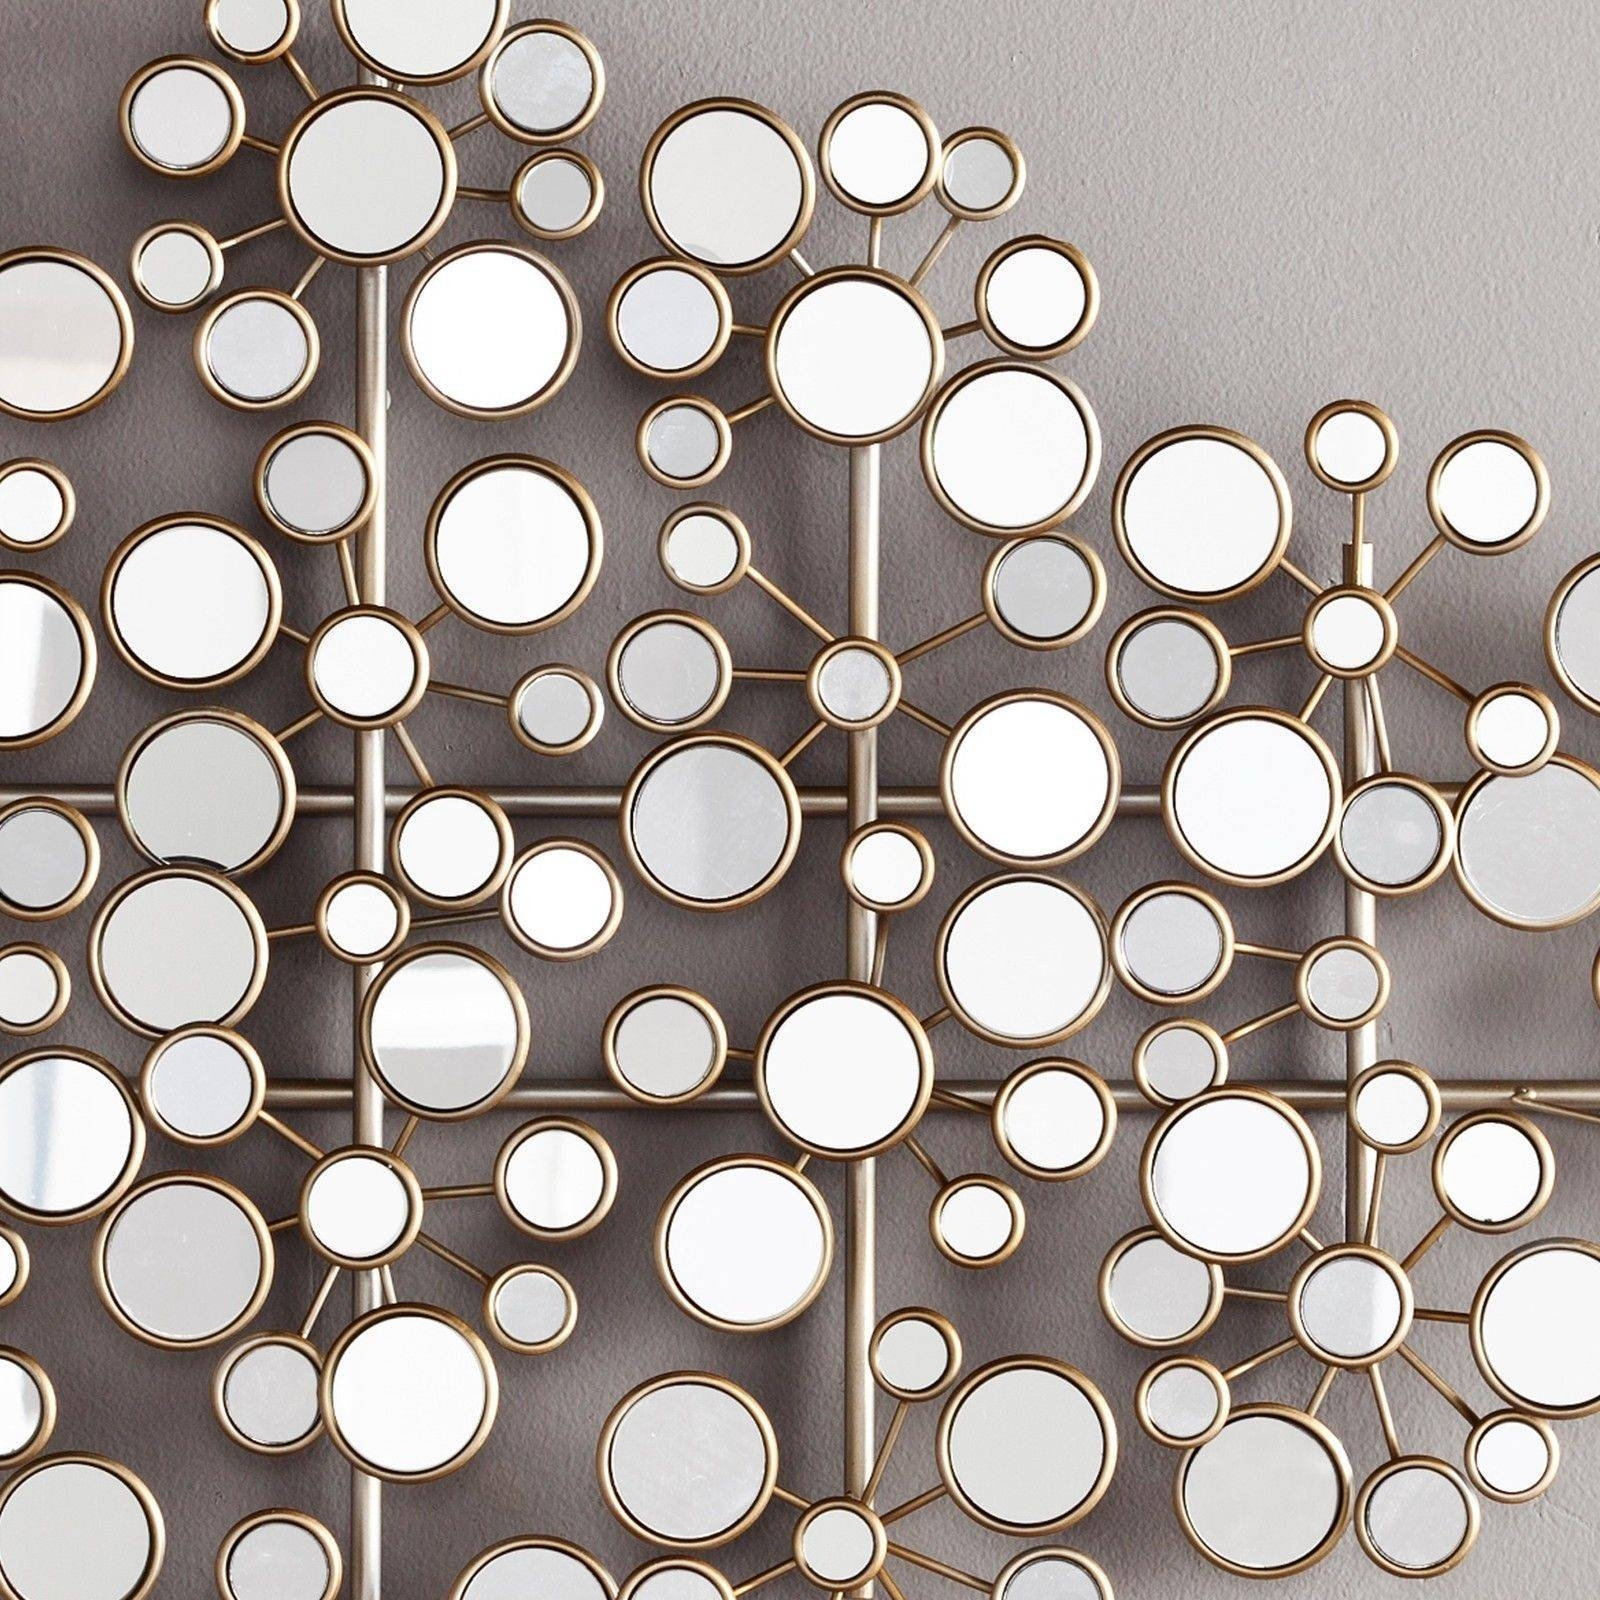 Superb Wall Decor Metal Wall Art Rope Steel Circles Metal Wall Art In Current Mirror Circles Wall Art (View 13 of 20)